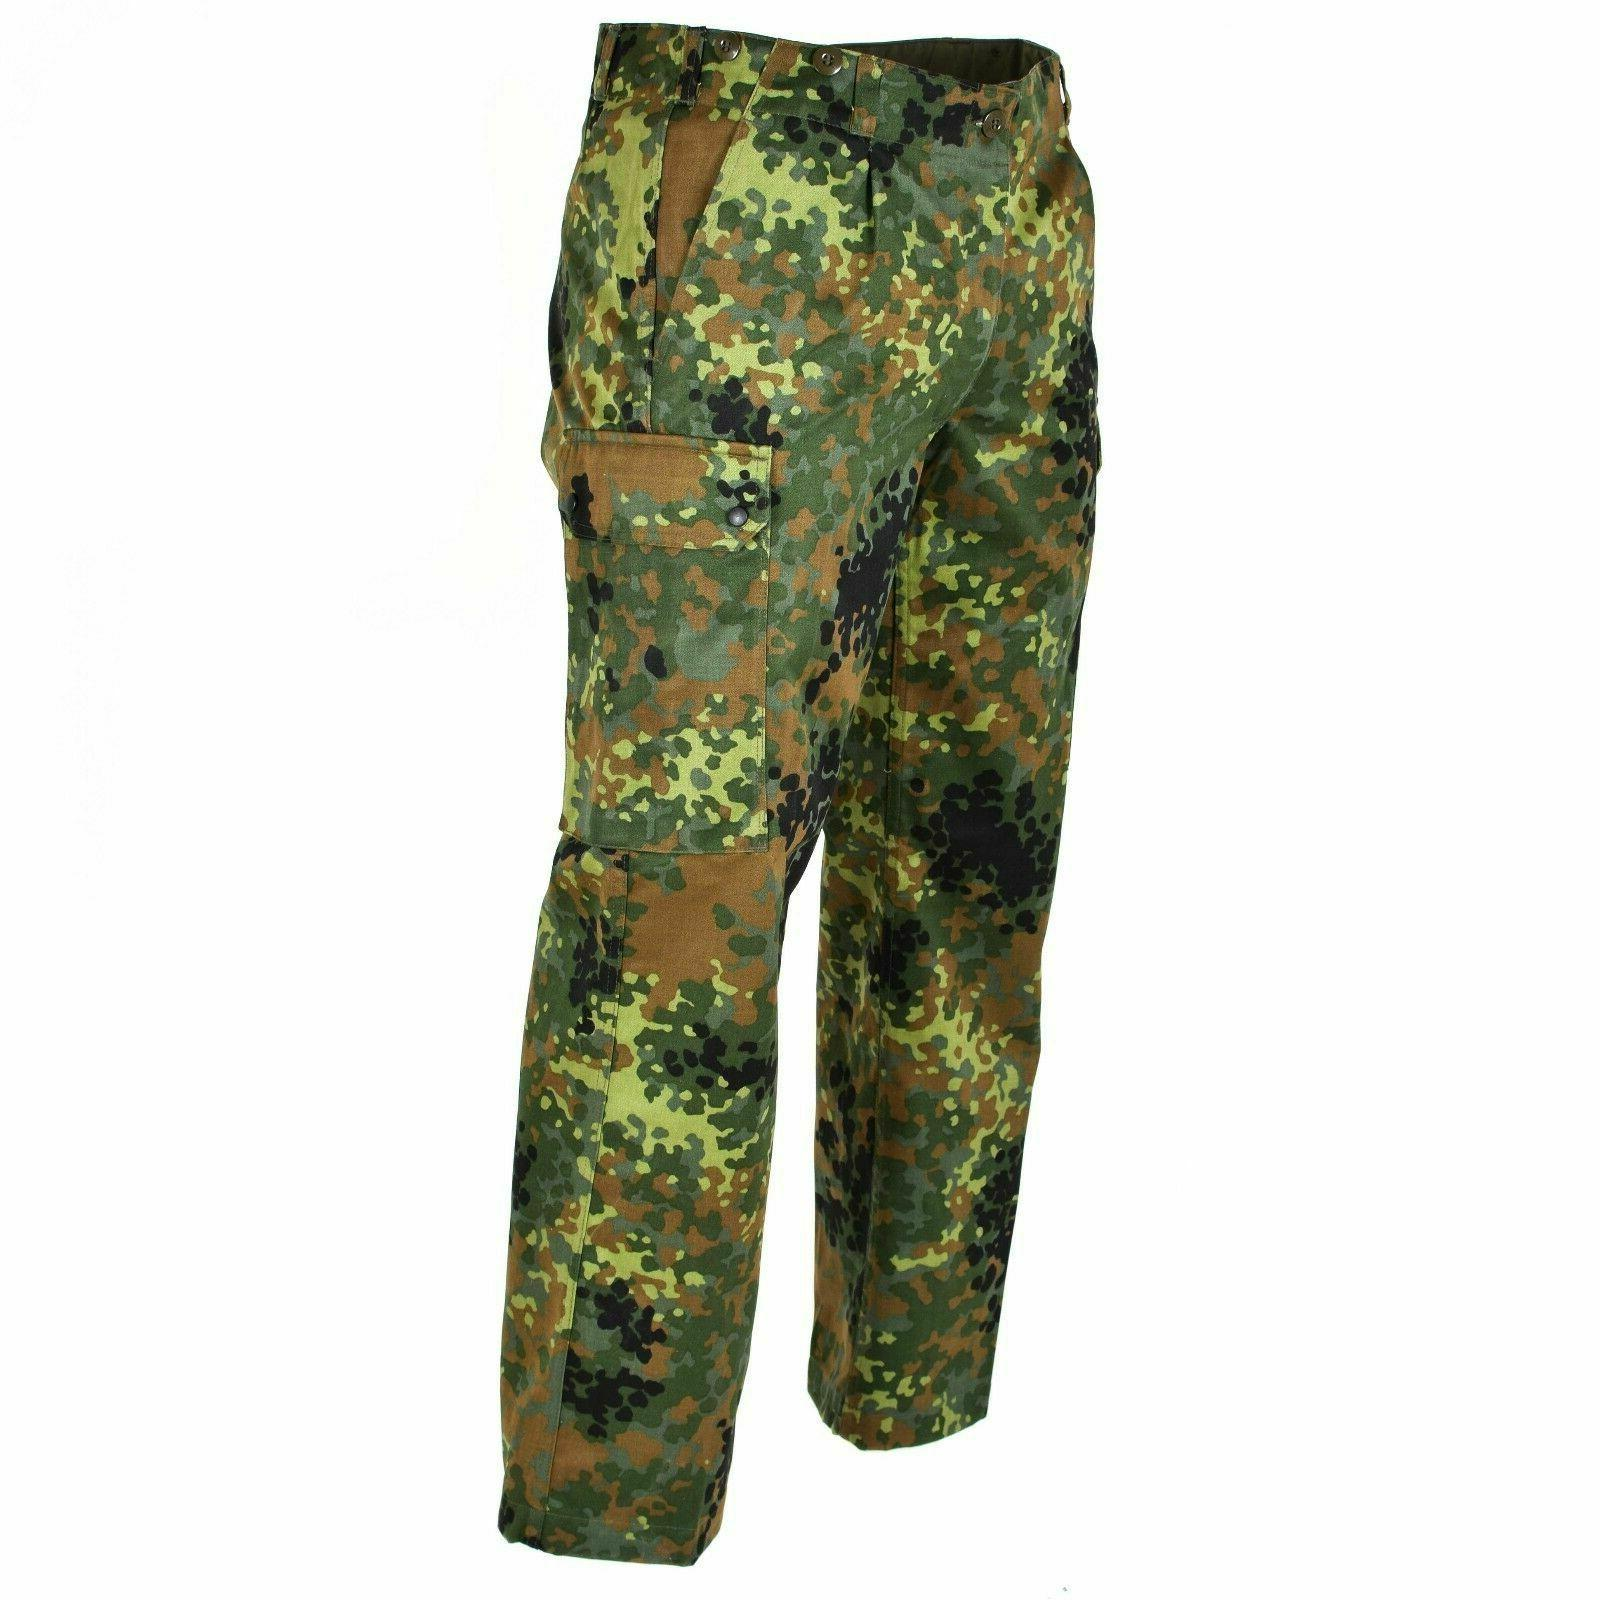 GERMAN FLECKTARN CAMOUFLAGE MILITARY POCKET TROUSERS